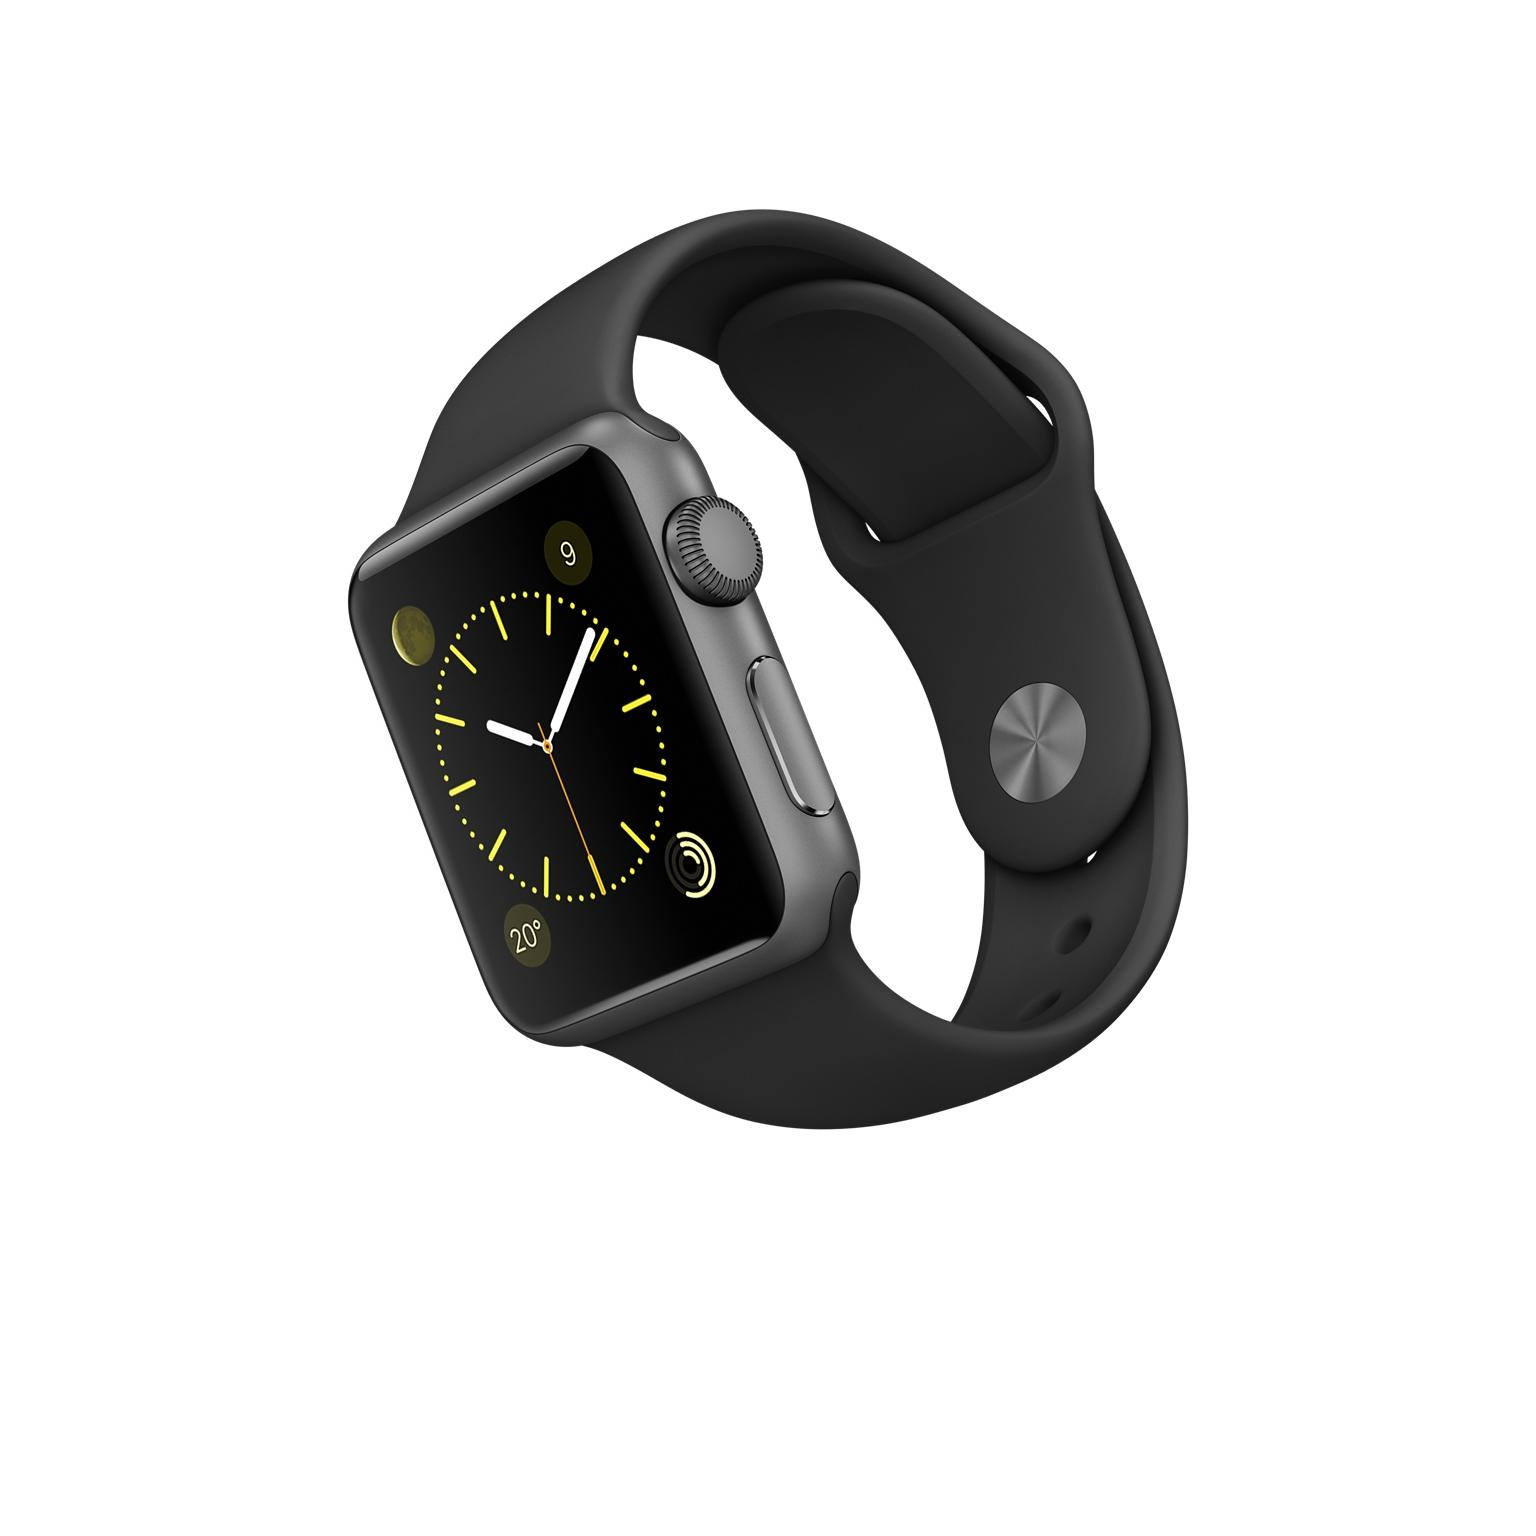 Apple Watch (Series 1) 38 mm - Aluminium Spacegrau - Sportarmband schwarz